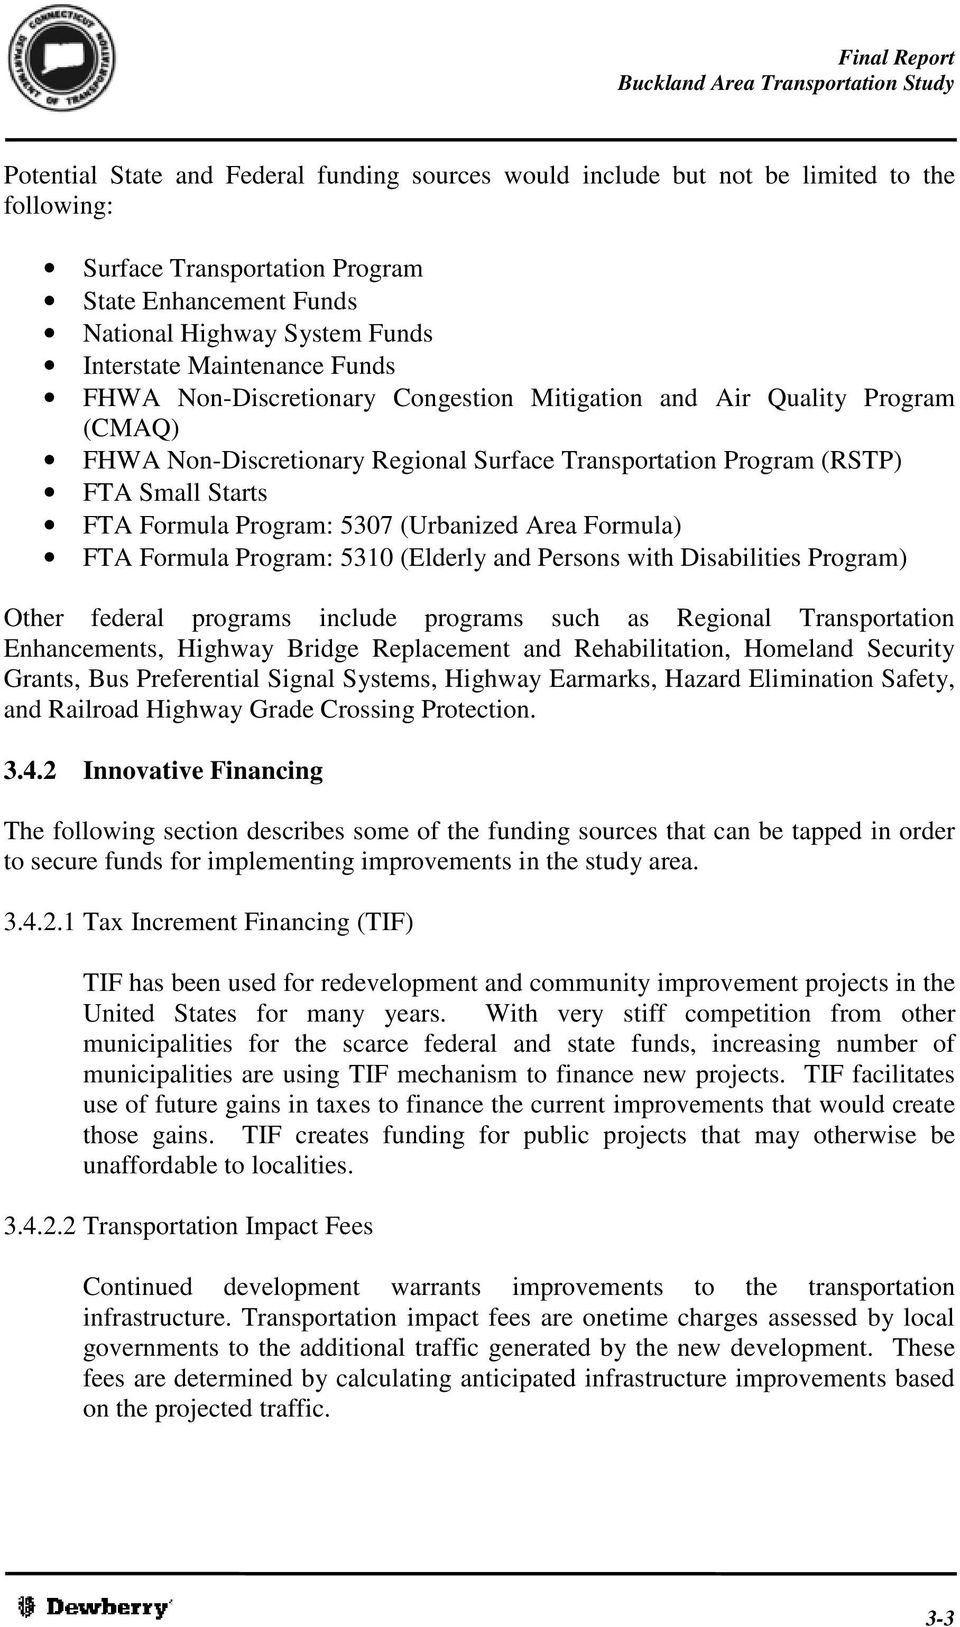 Program: 5307 (Urbanized Area Formula) FTA Formula Program: 5310 (Elderly and Persons with Disabilities Program) Other federal programs include programs such as Regional Transportation Enhancements,